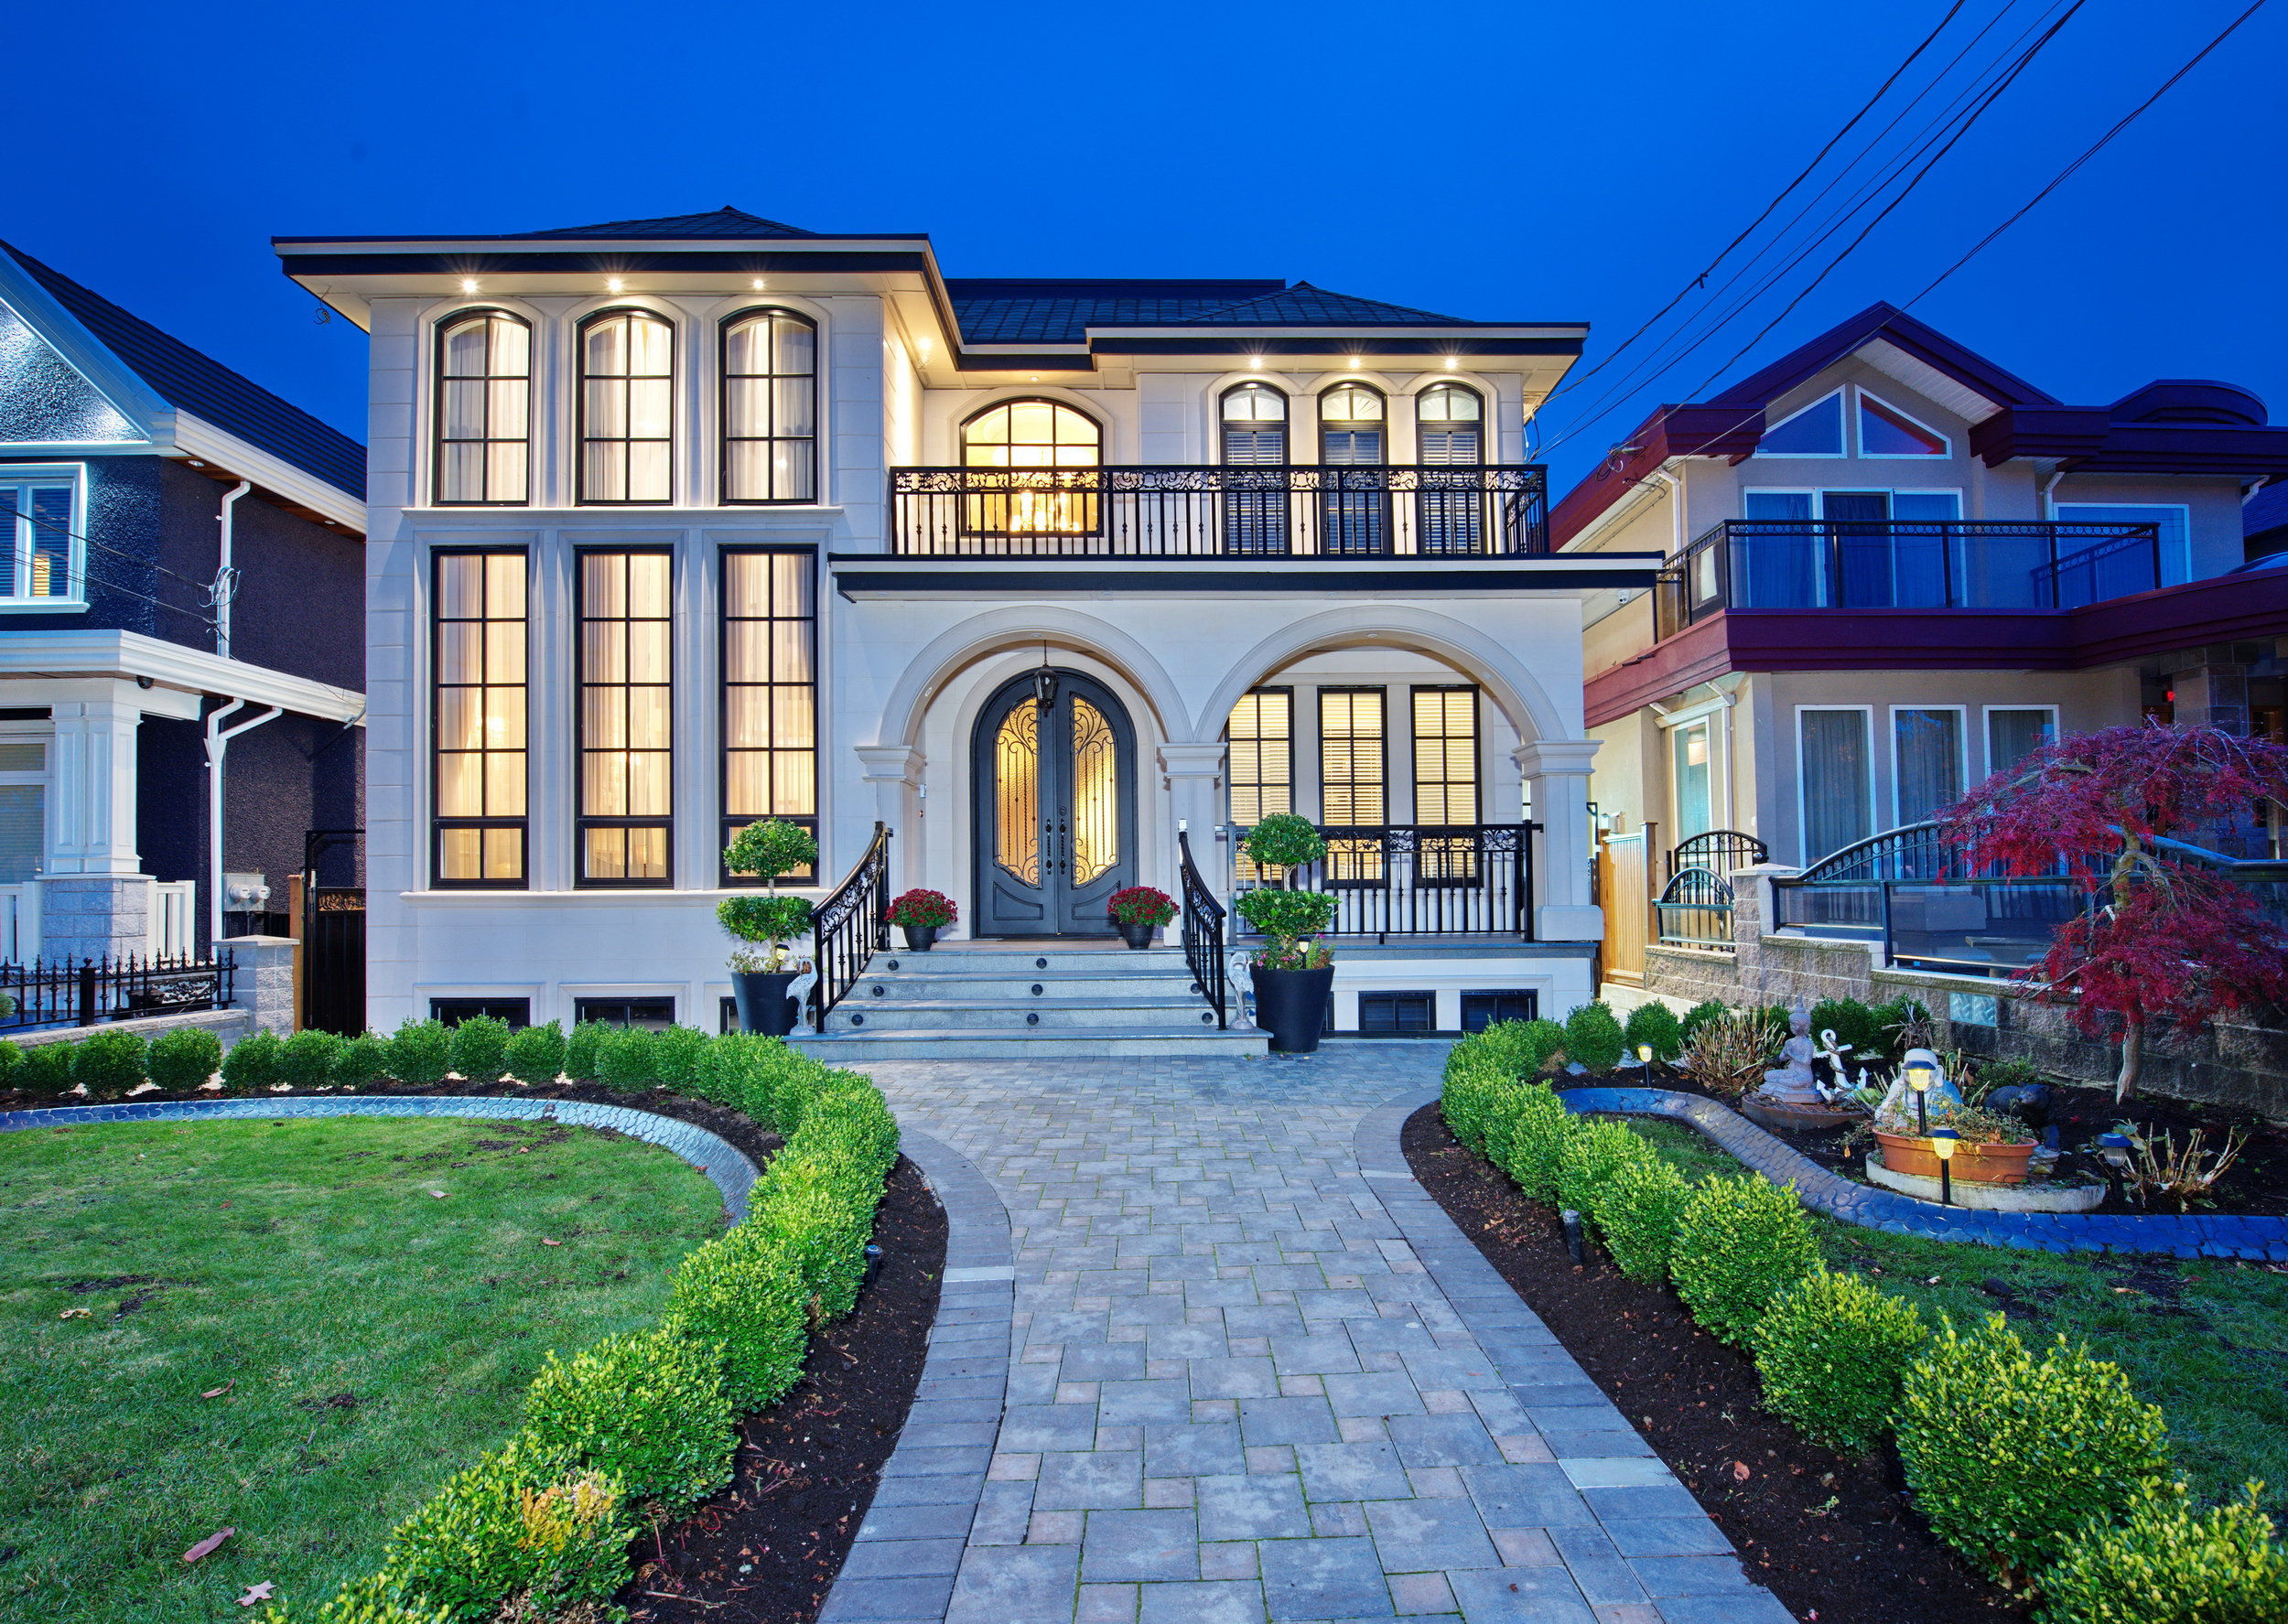 952 East 53rd Ave. - 4 Bed/6 Bath Custom HomeVancouver, BC3,242 sq. ft.